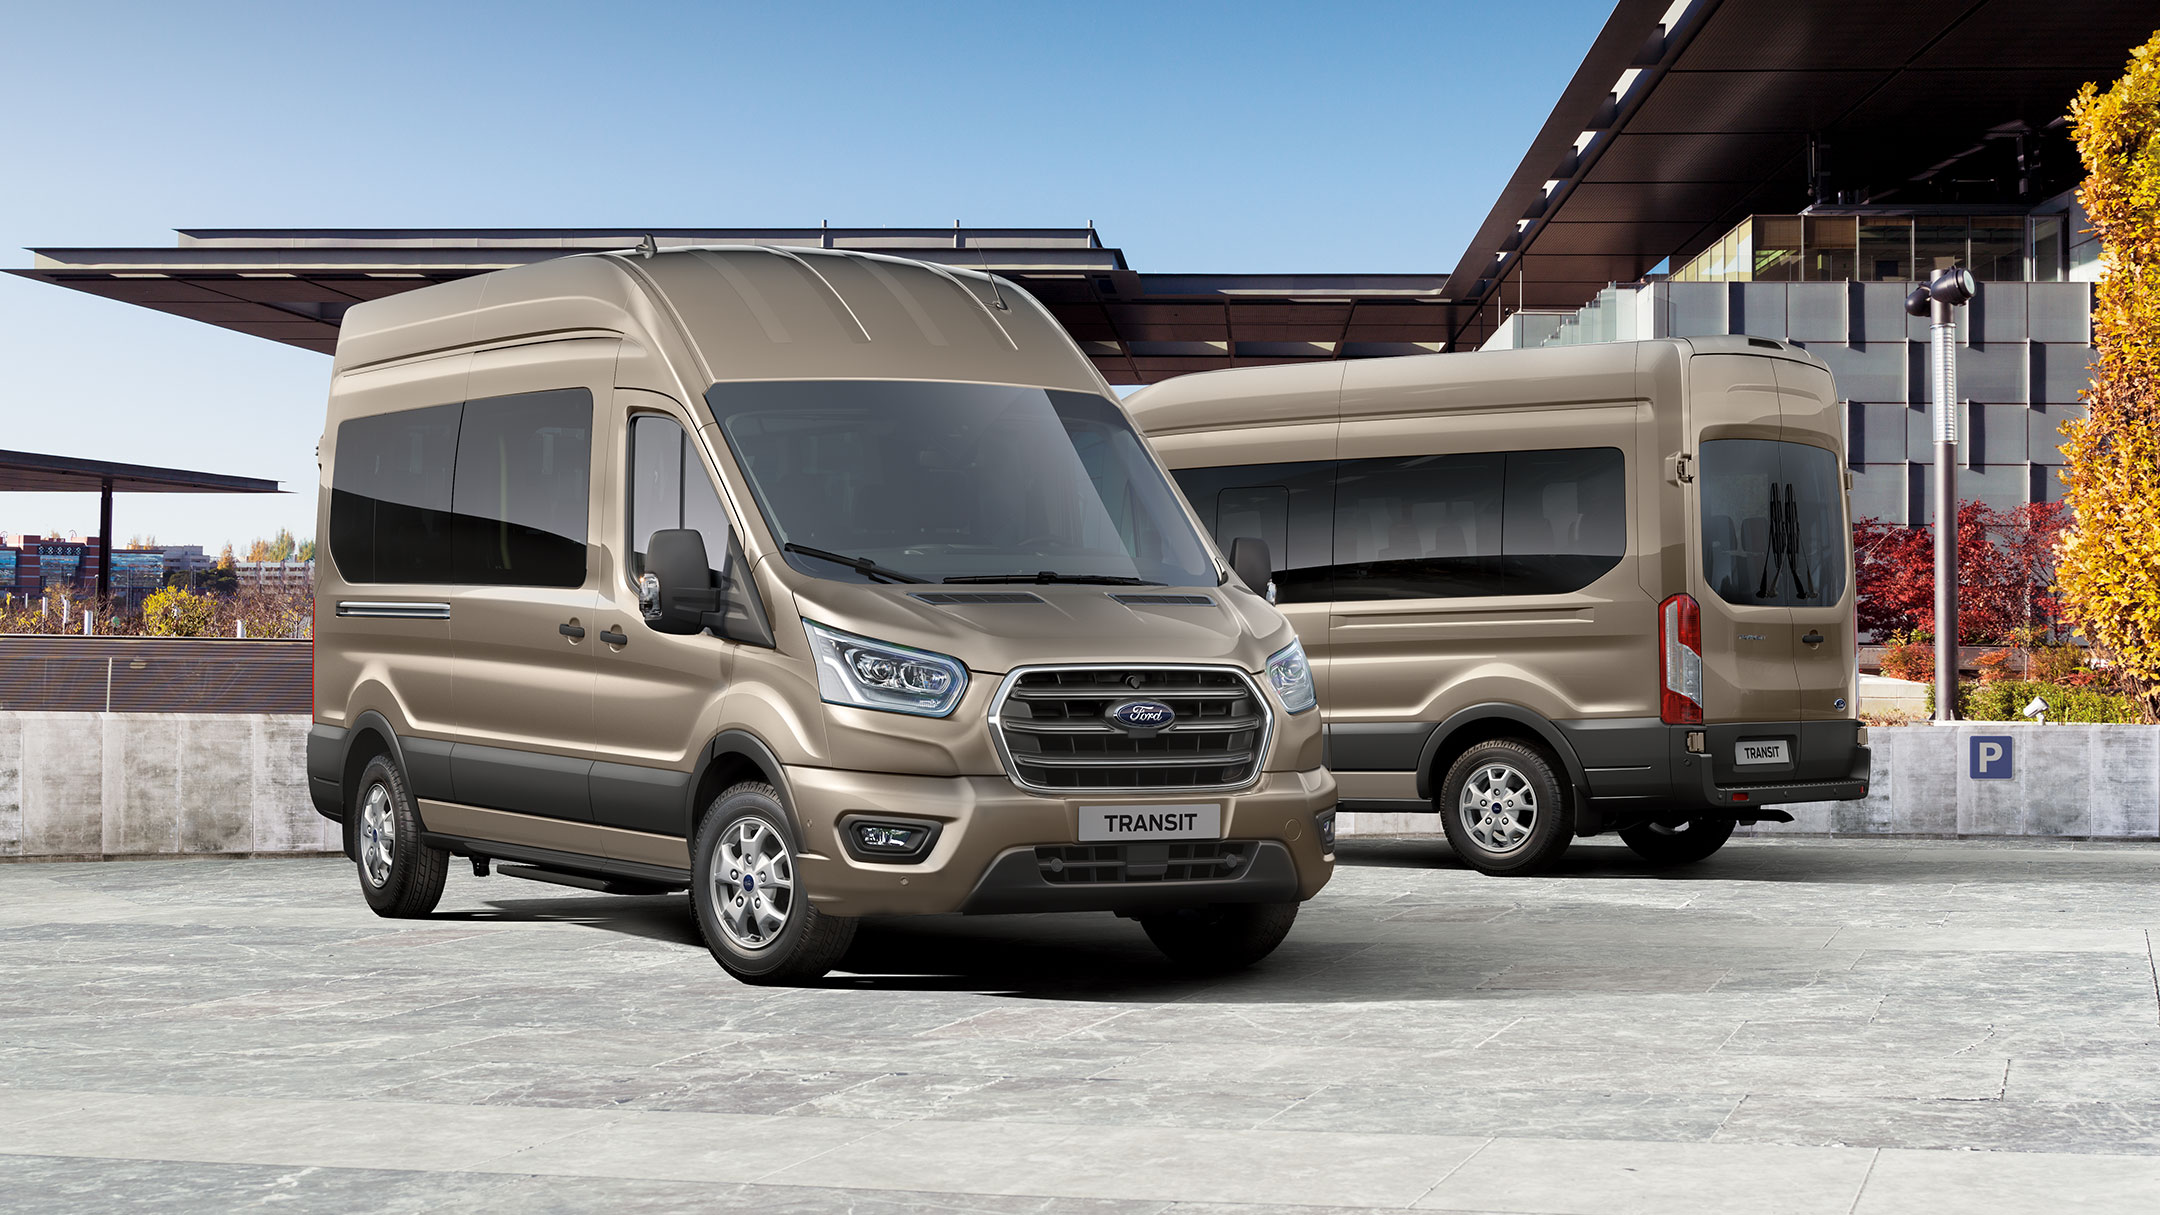 Two New gold Ford Transit Minibuses parked side by side